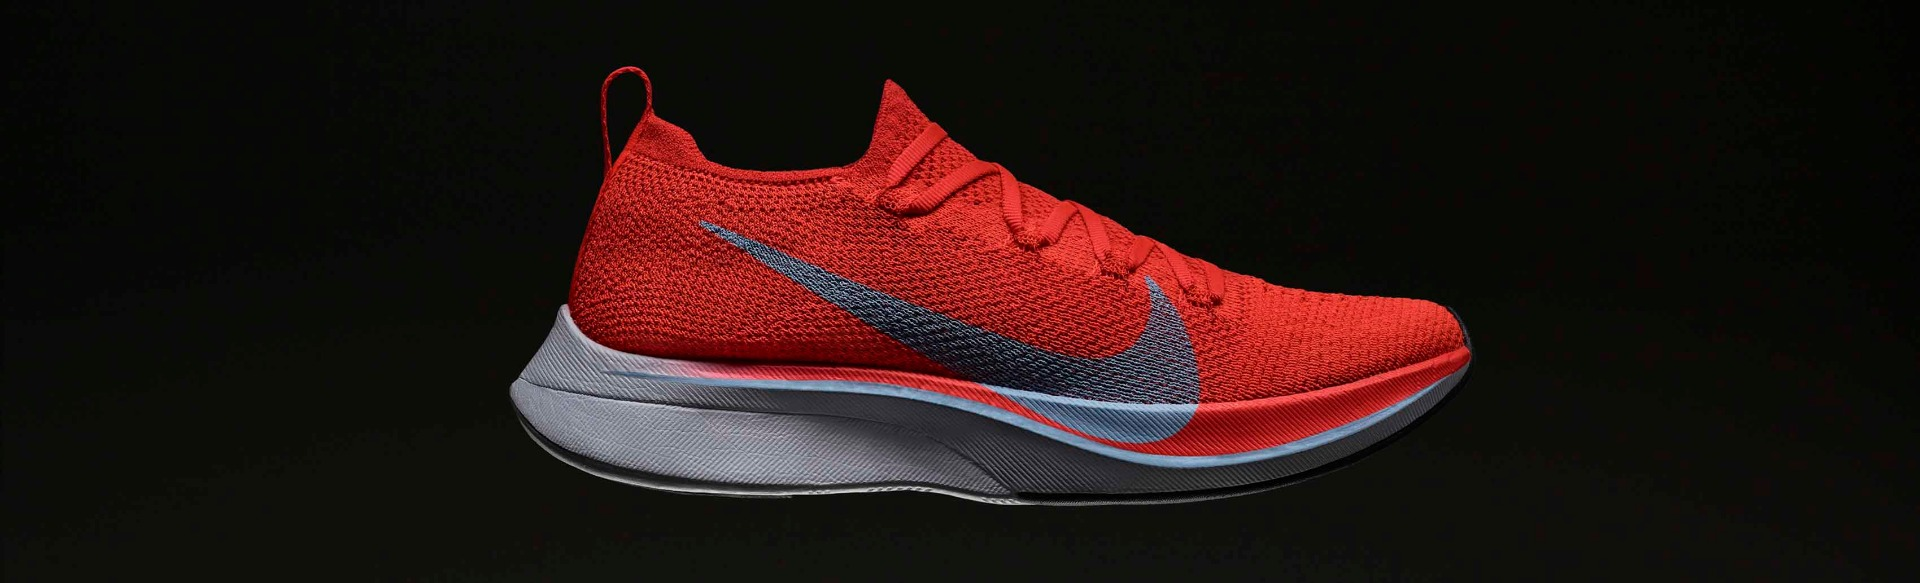 b0b361436c9 Nike VaporFly 4% Flyknit. Learn about the one of the fastest running ...